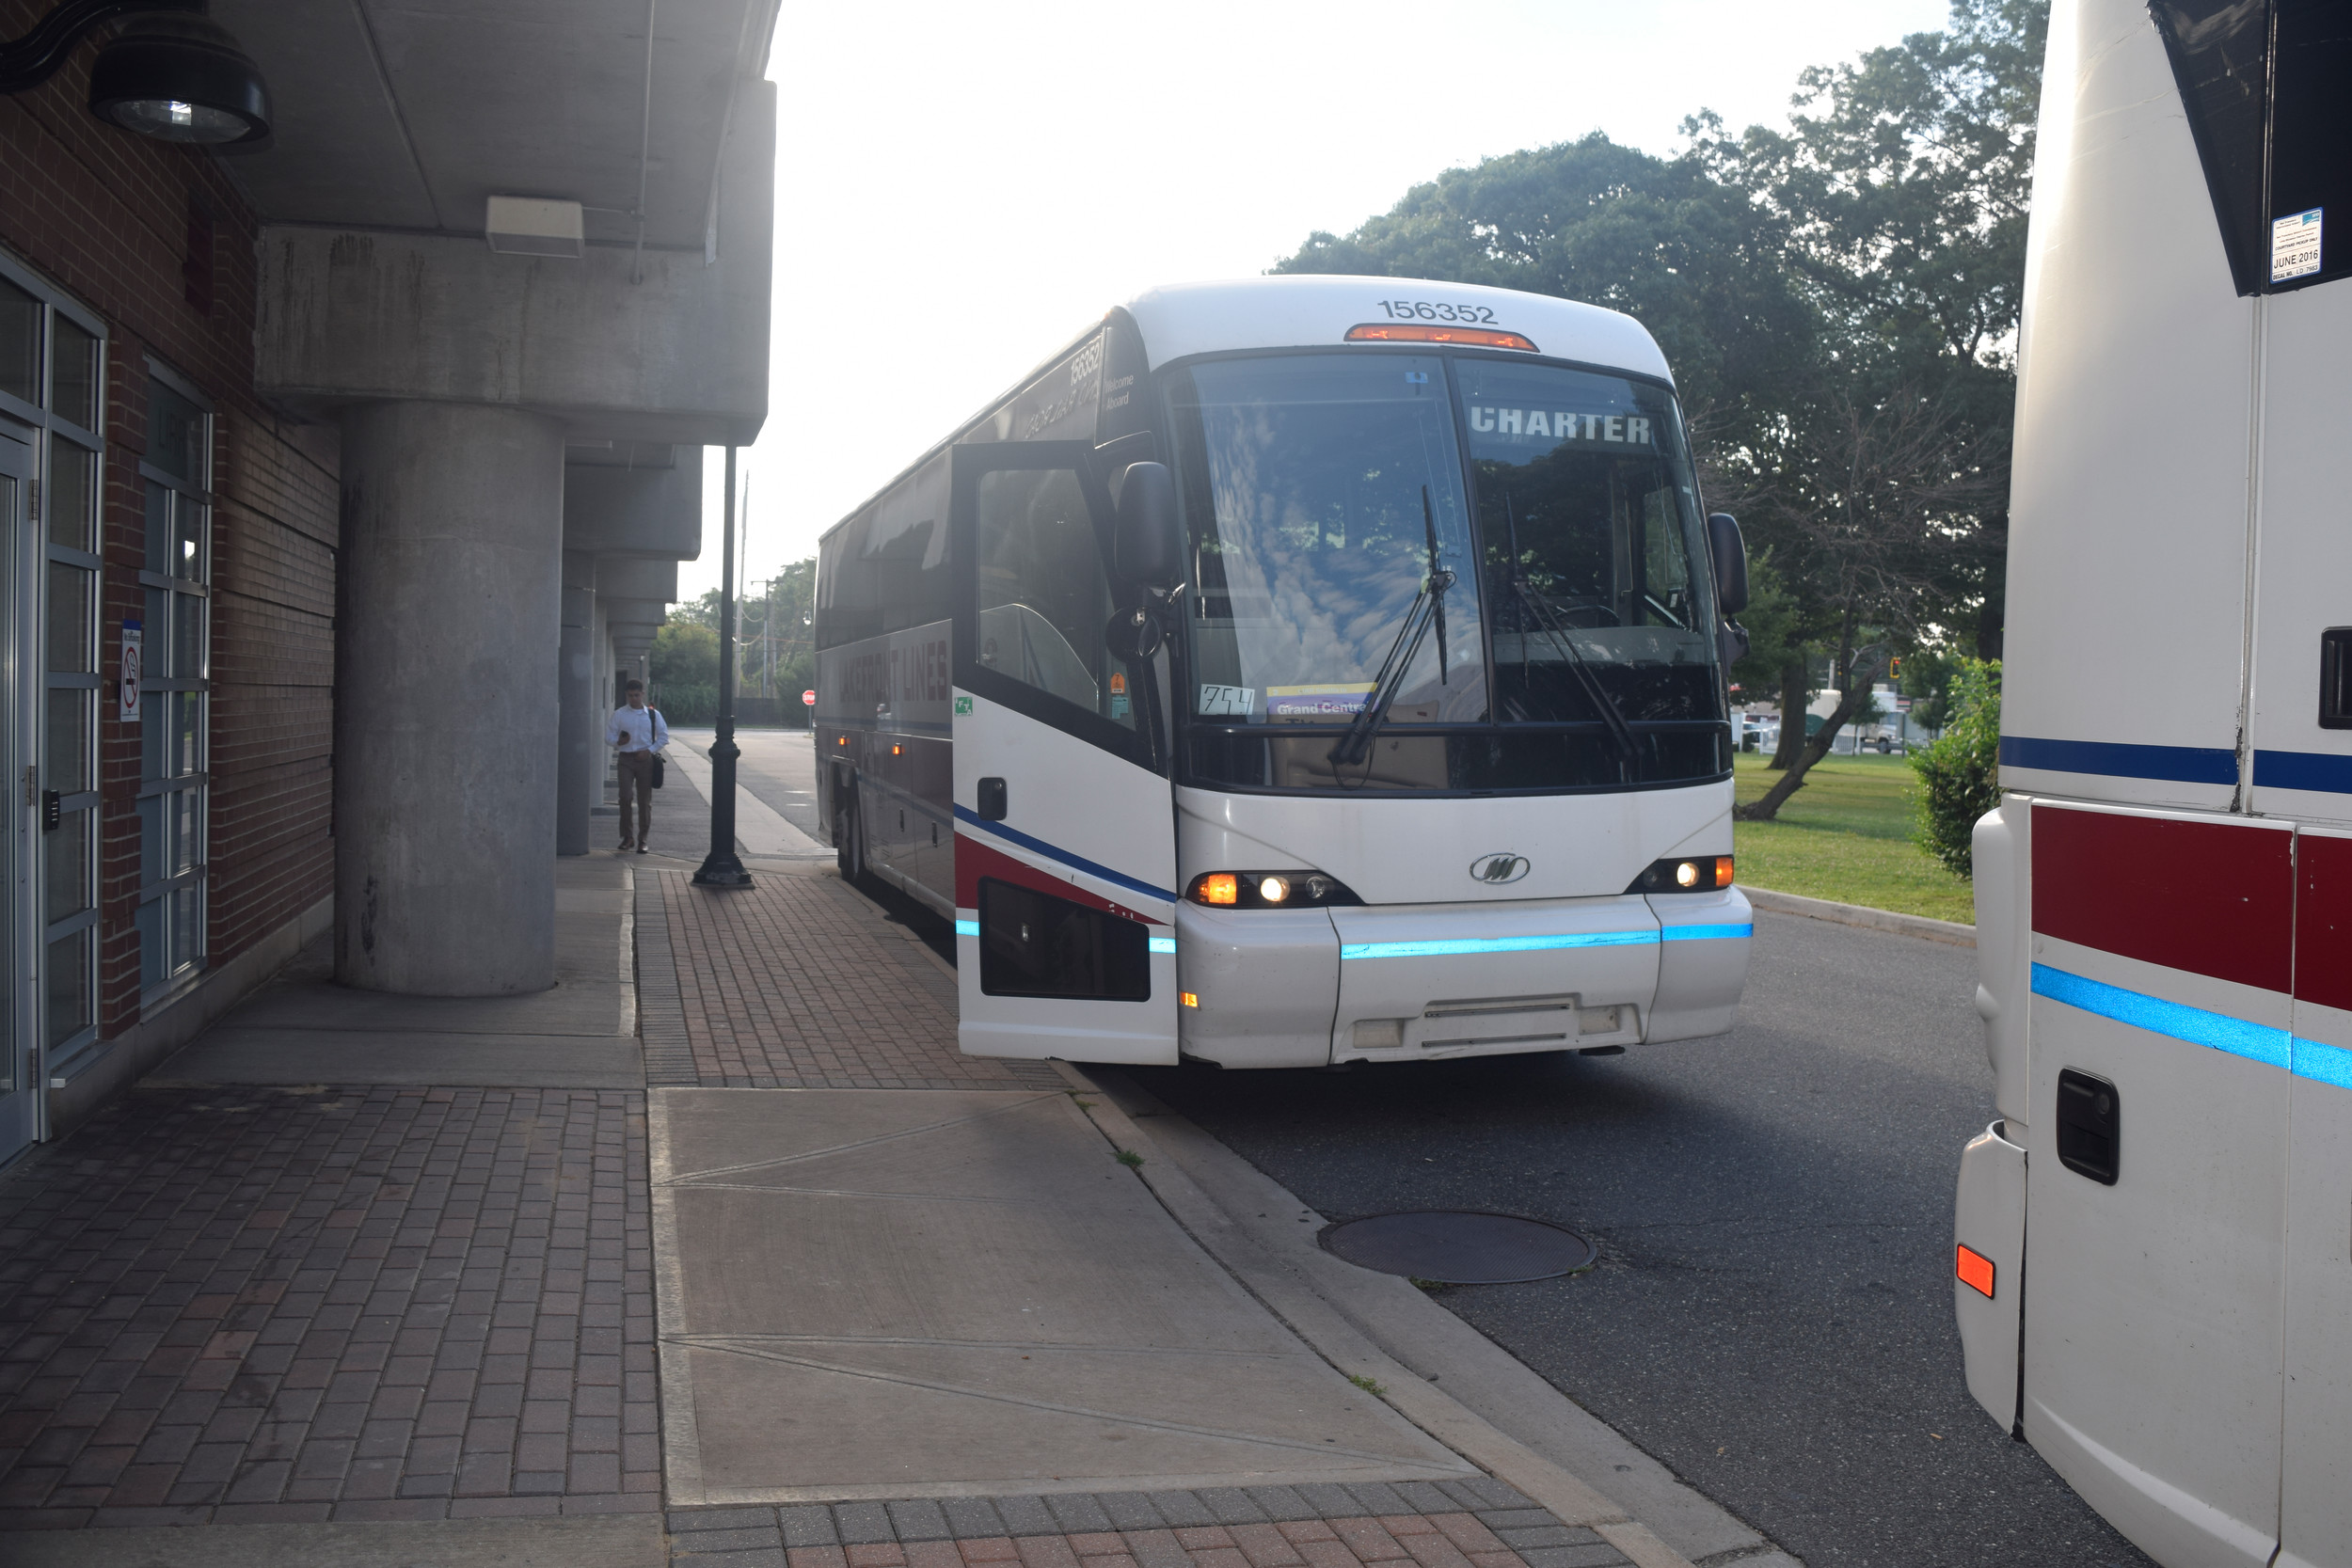 Local commuters may board charter buses to New York City at the Seaford station.